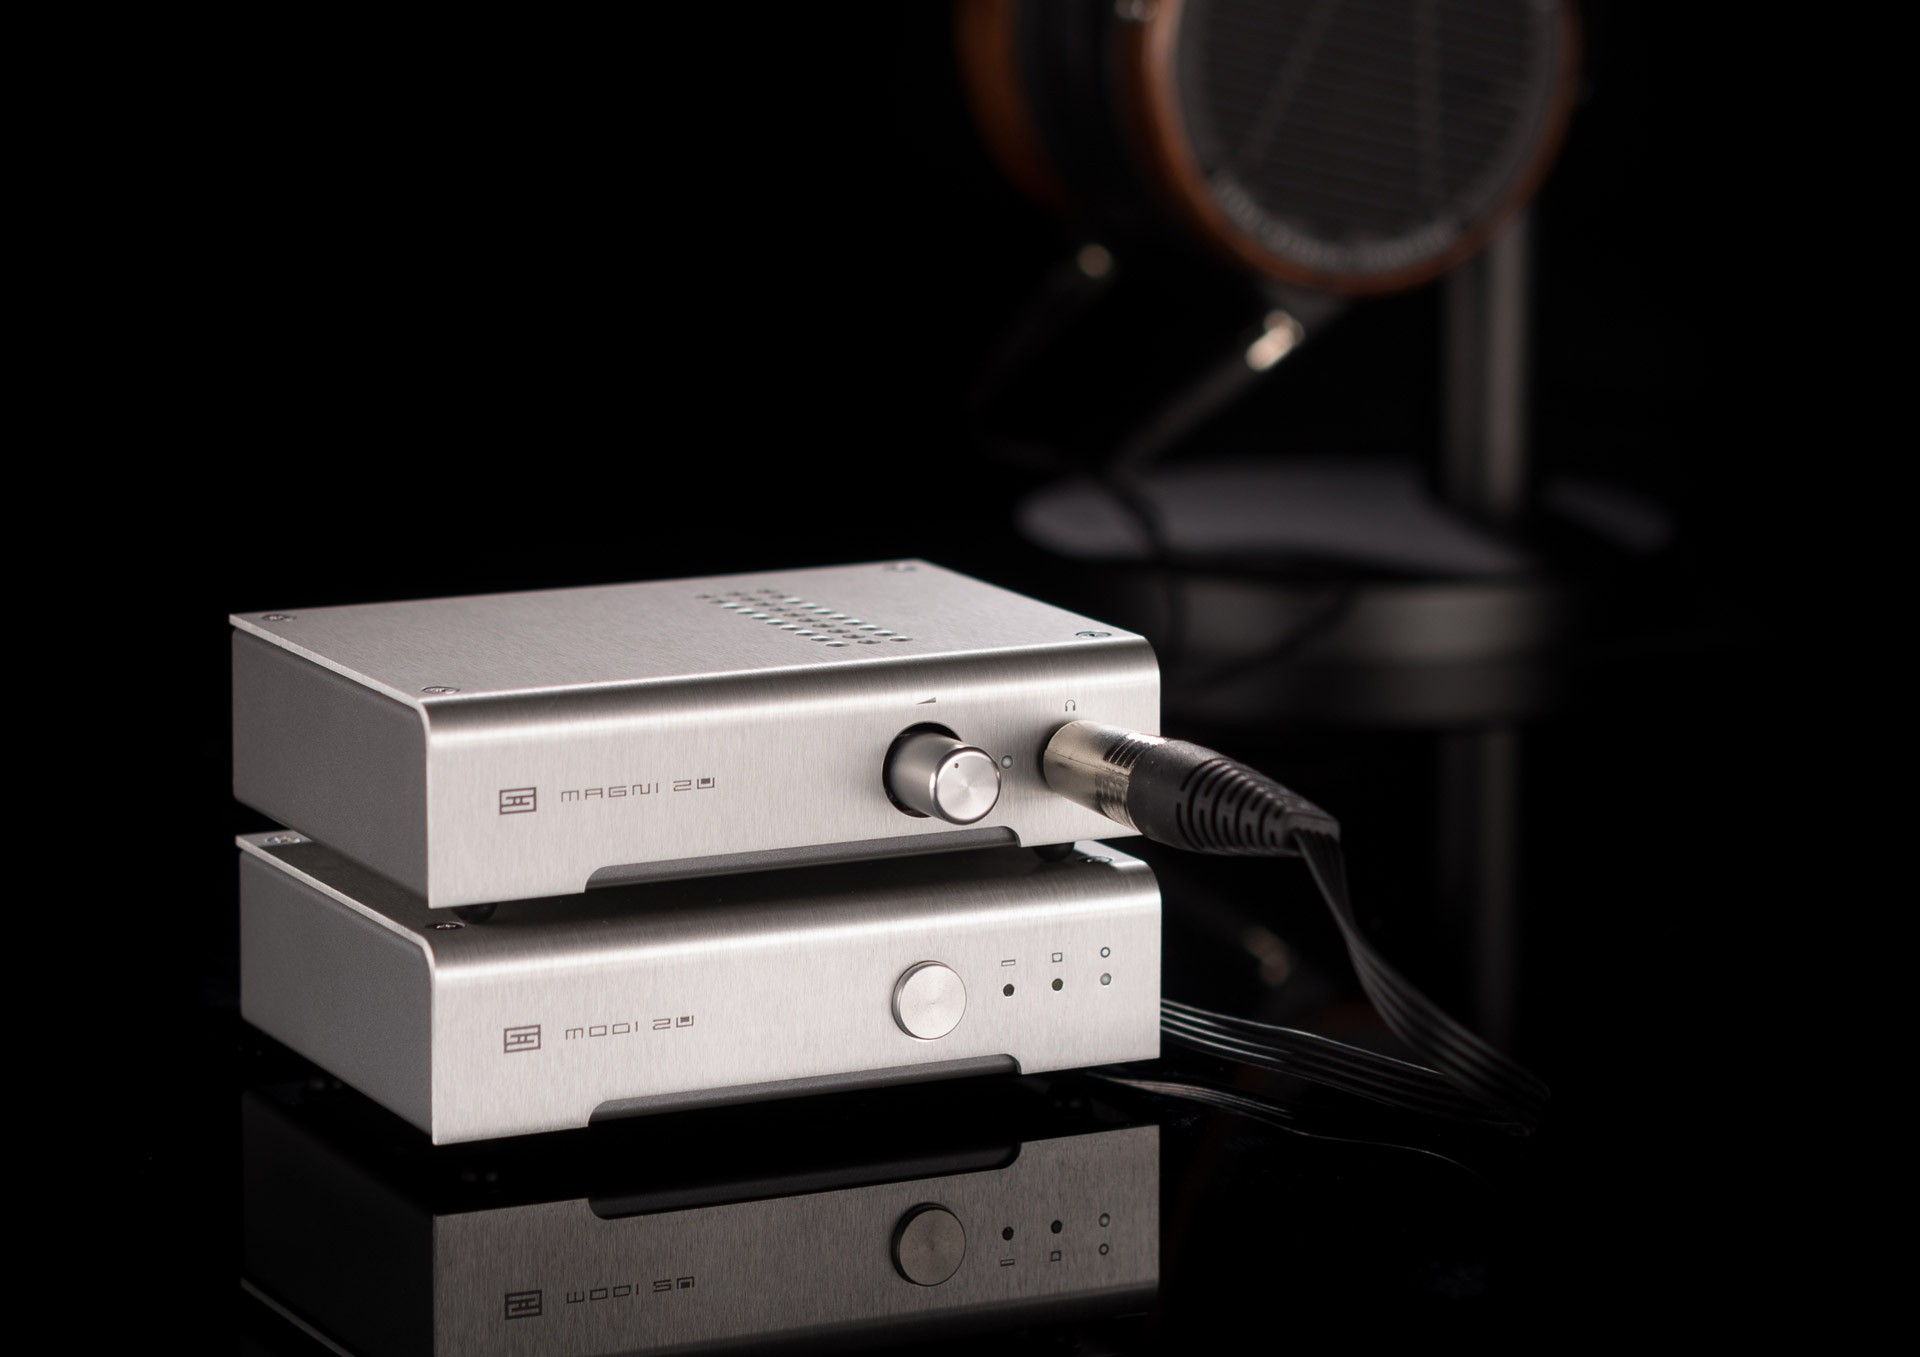 The Magni 2 headphone amplifier (top, $119) and Modi 2 USB DAC (bottom, $119) by Schiit.